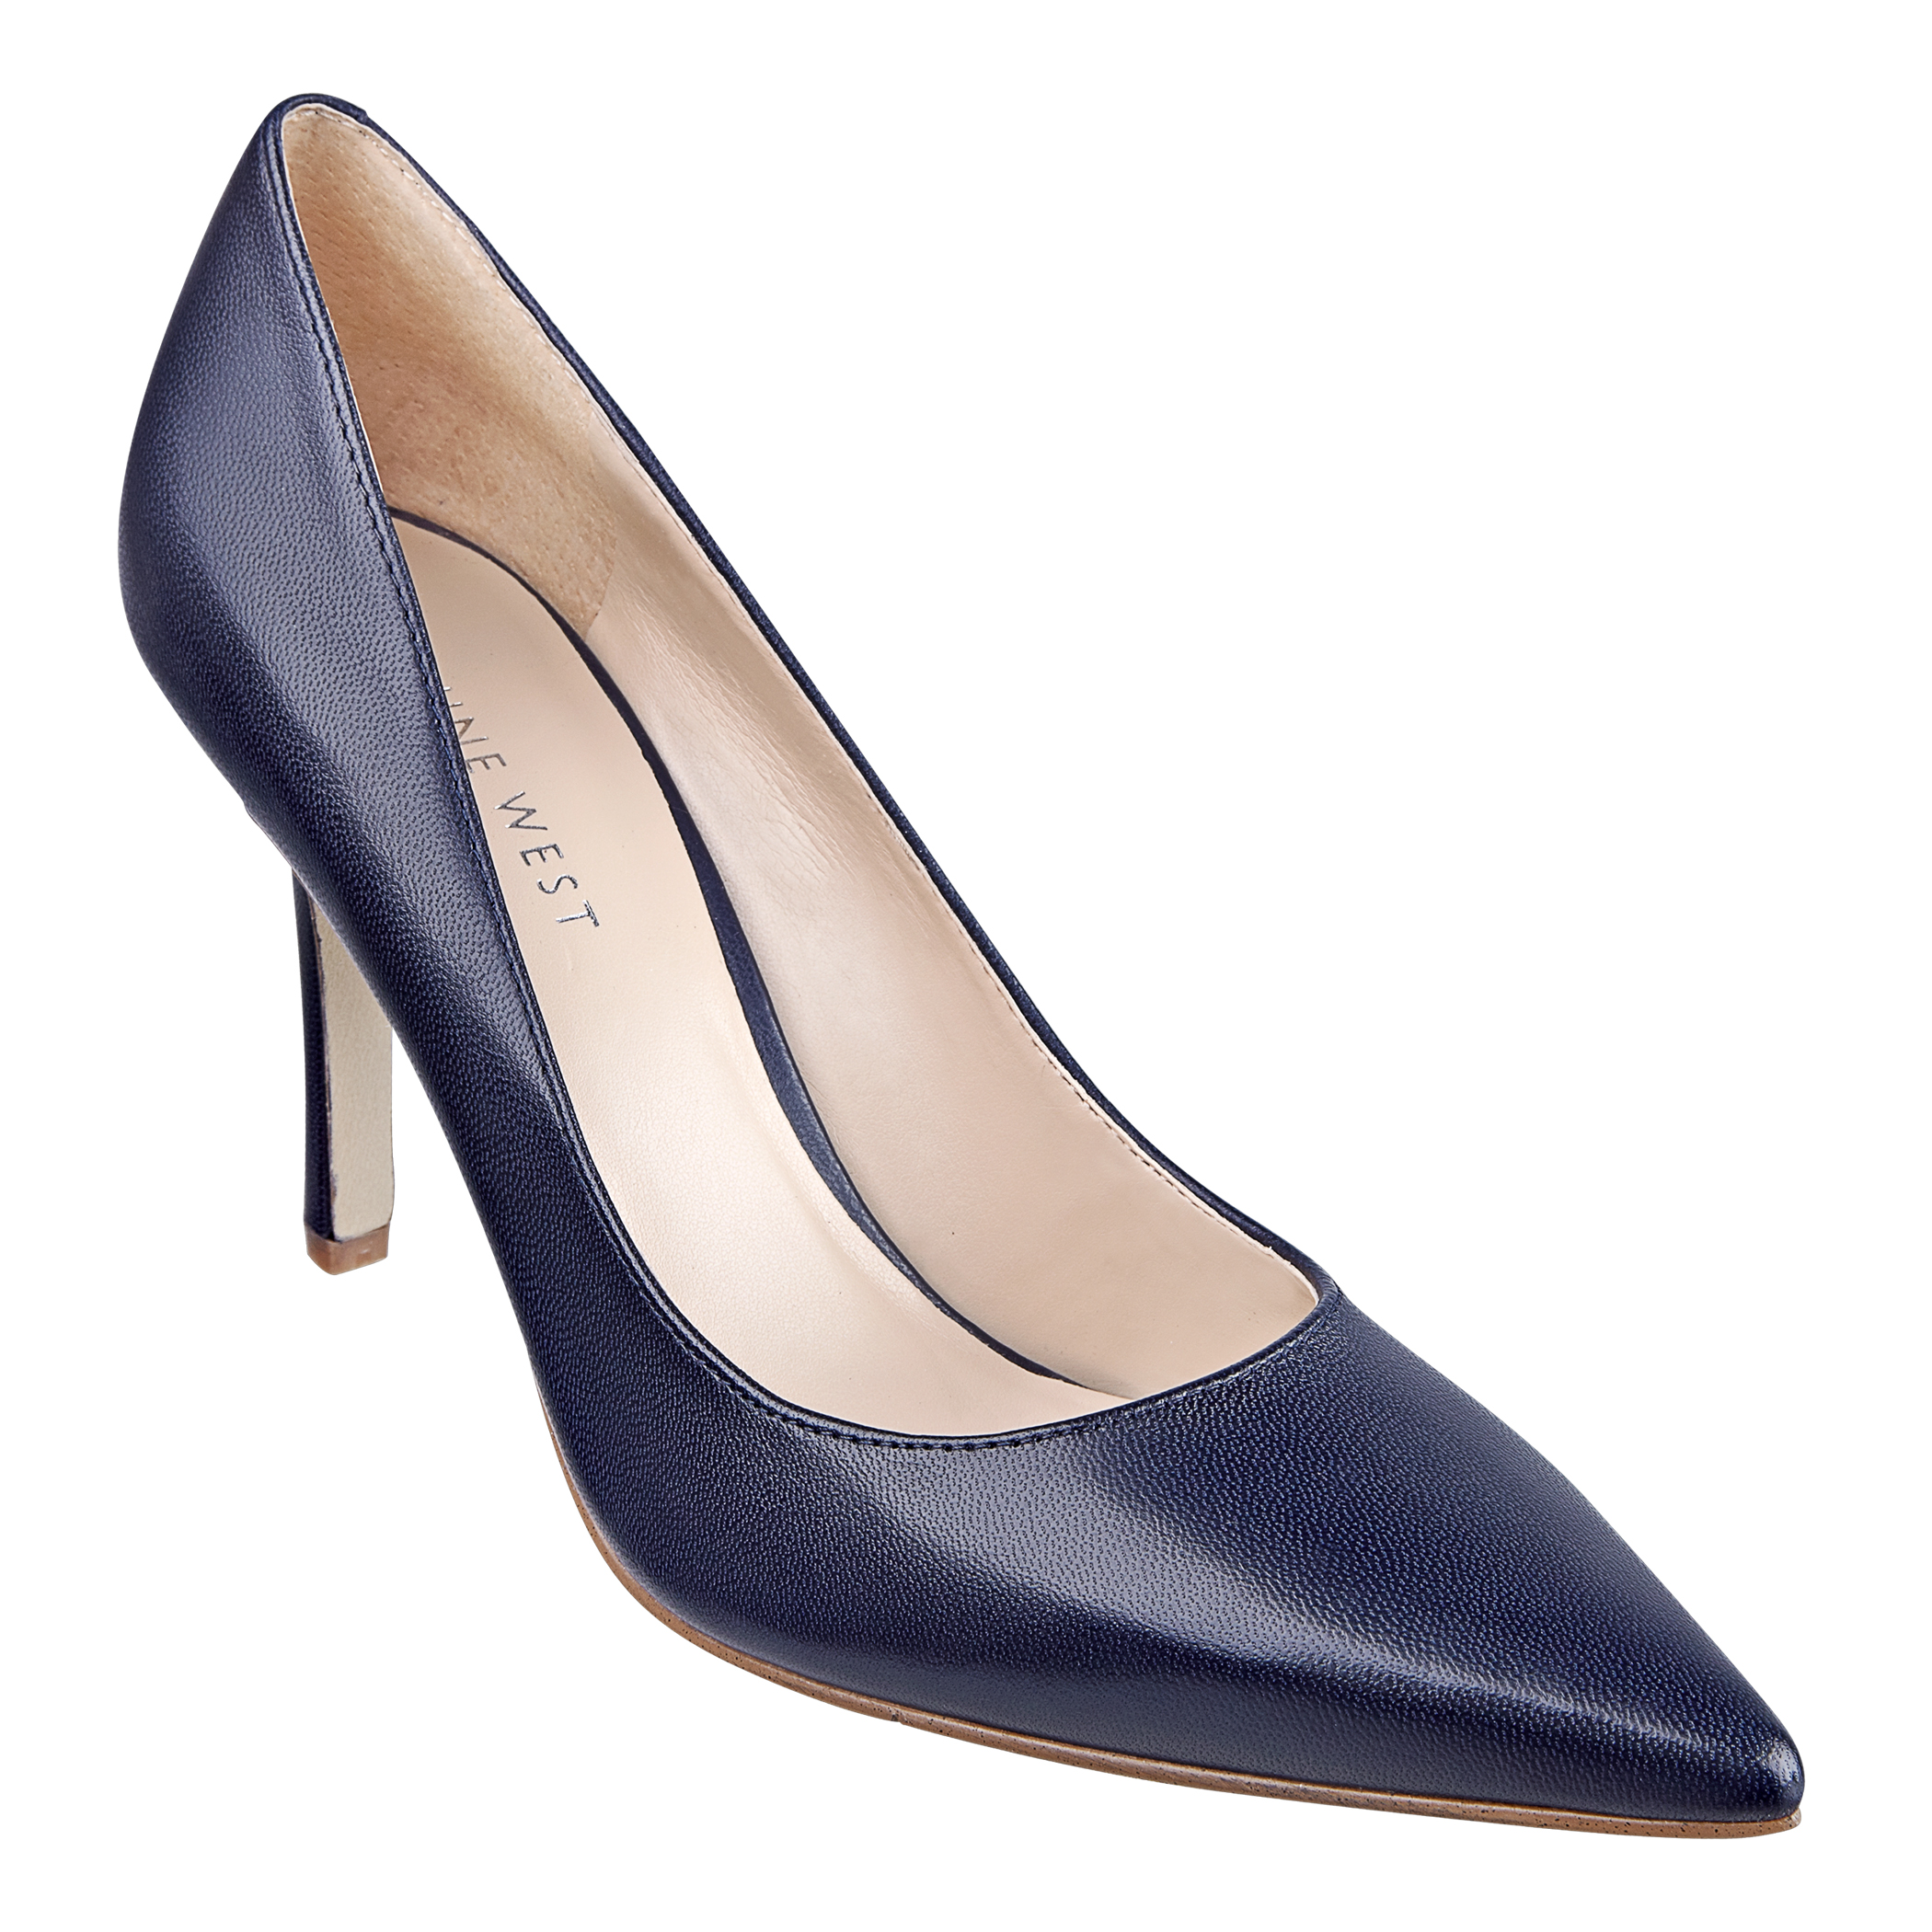 Nine West  Shoes   Pumps   Martina - pointy toe pump